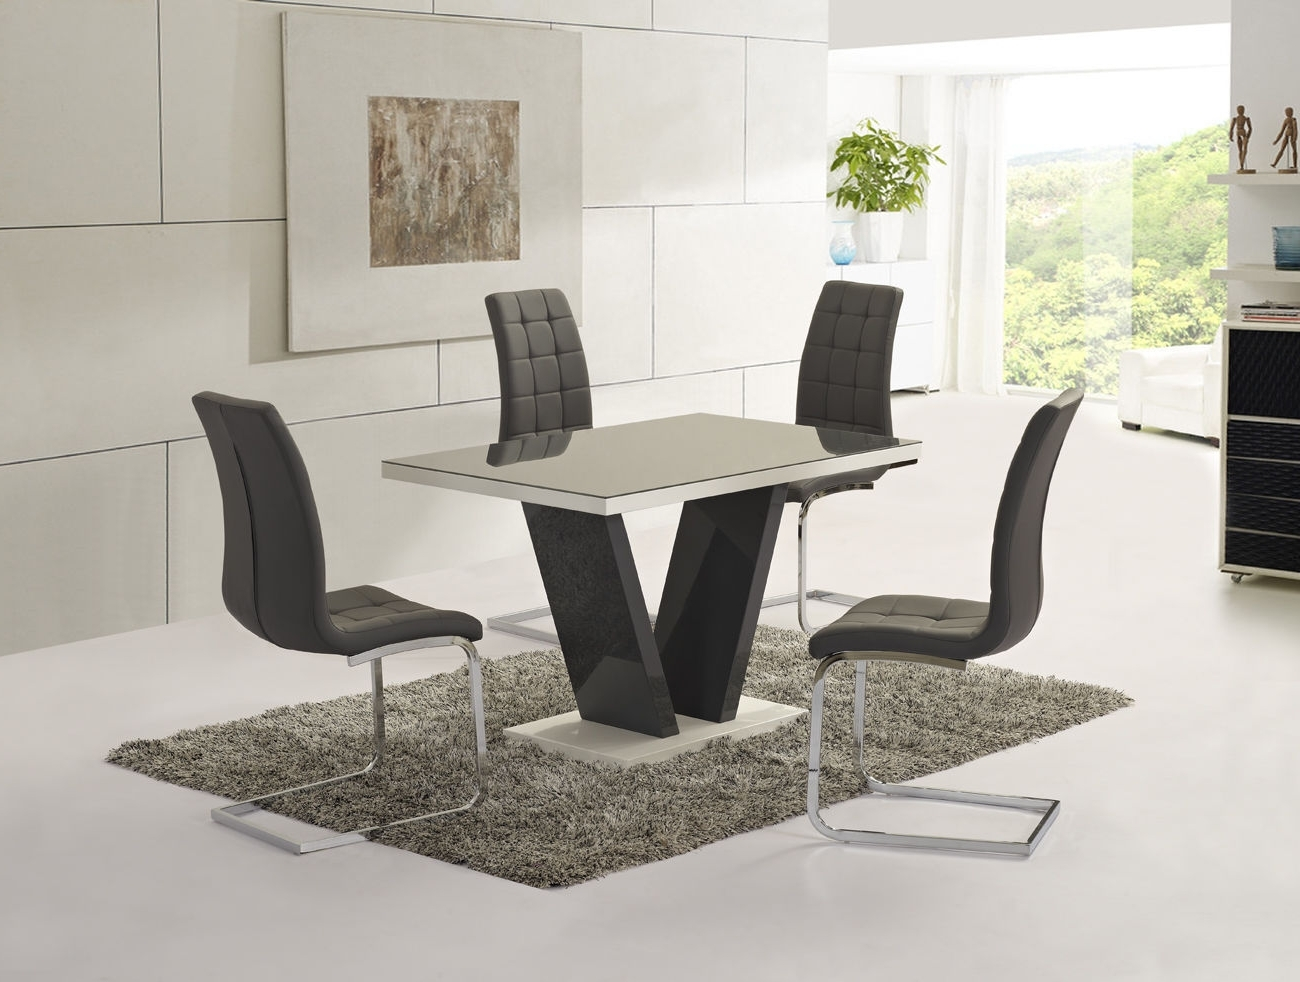 Most Recently Released Black Glass Dining Tables And 6 Chairs With Regard To Ga Vico Gloss Grey Glass Top Designer 160Cm Dining Set – 4/6 Grey / White Chairs (View 11 of 25)